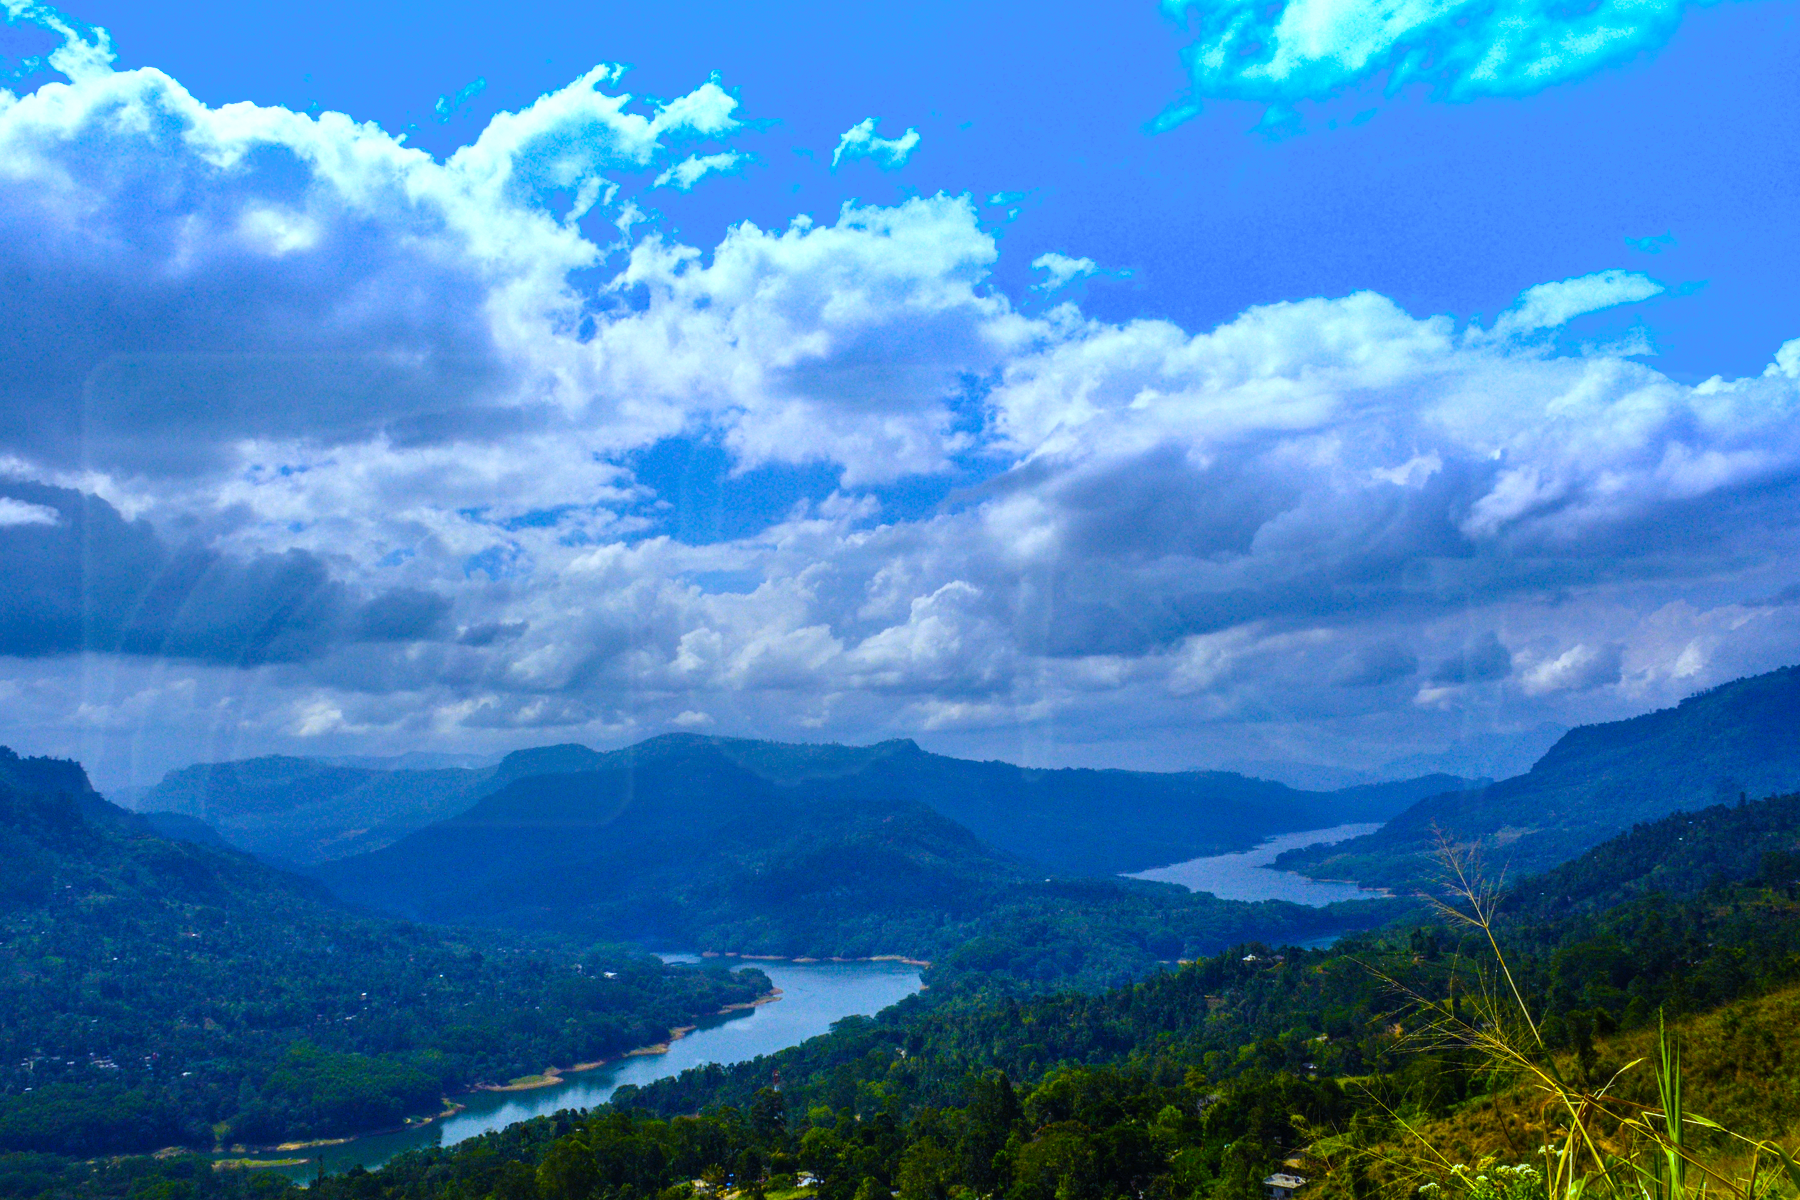 Sky, river and greenery in hill coun